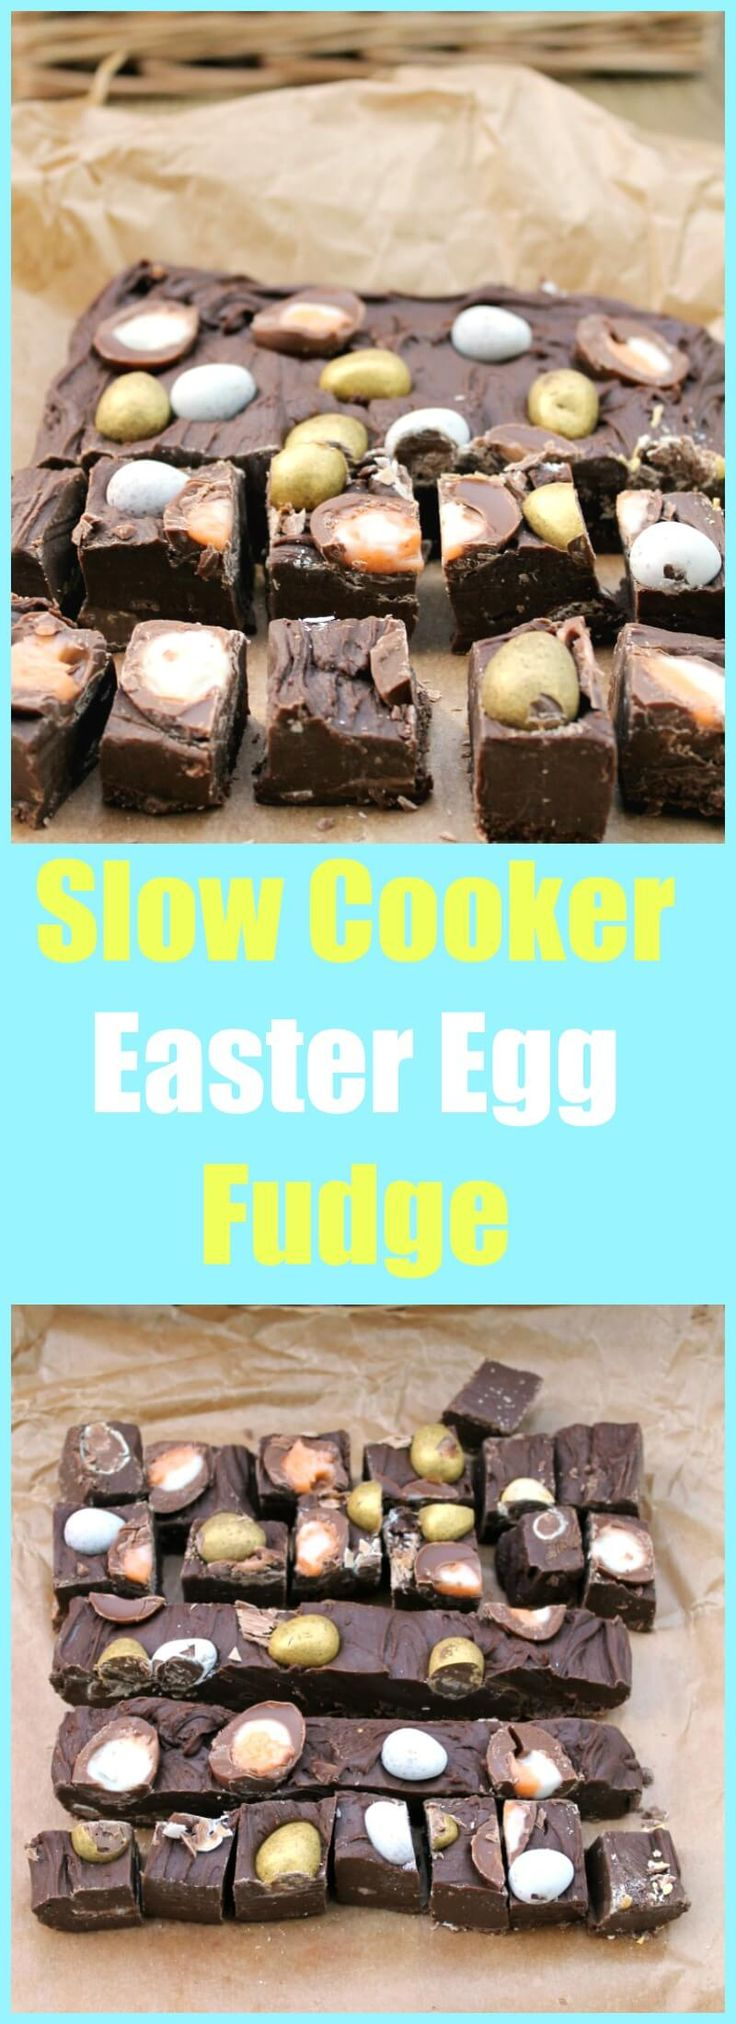 Use up your Easter chocolate and feed your Cadbury Creme egg addiction with my slow cooker Easter Egg fudge, a chocolatey indulgence!